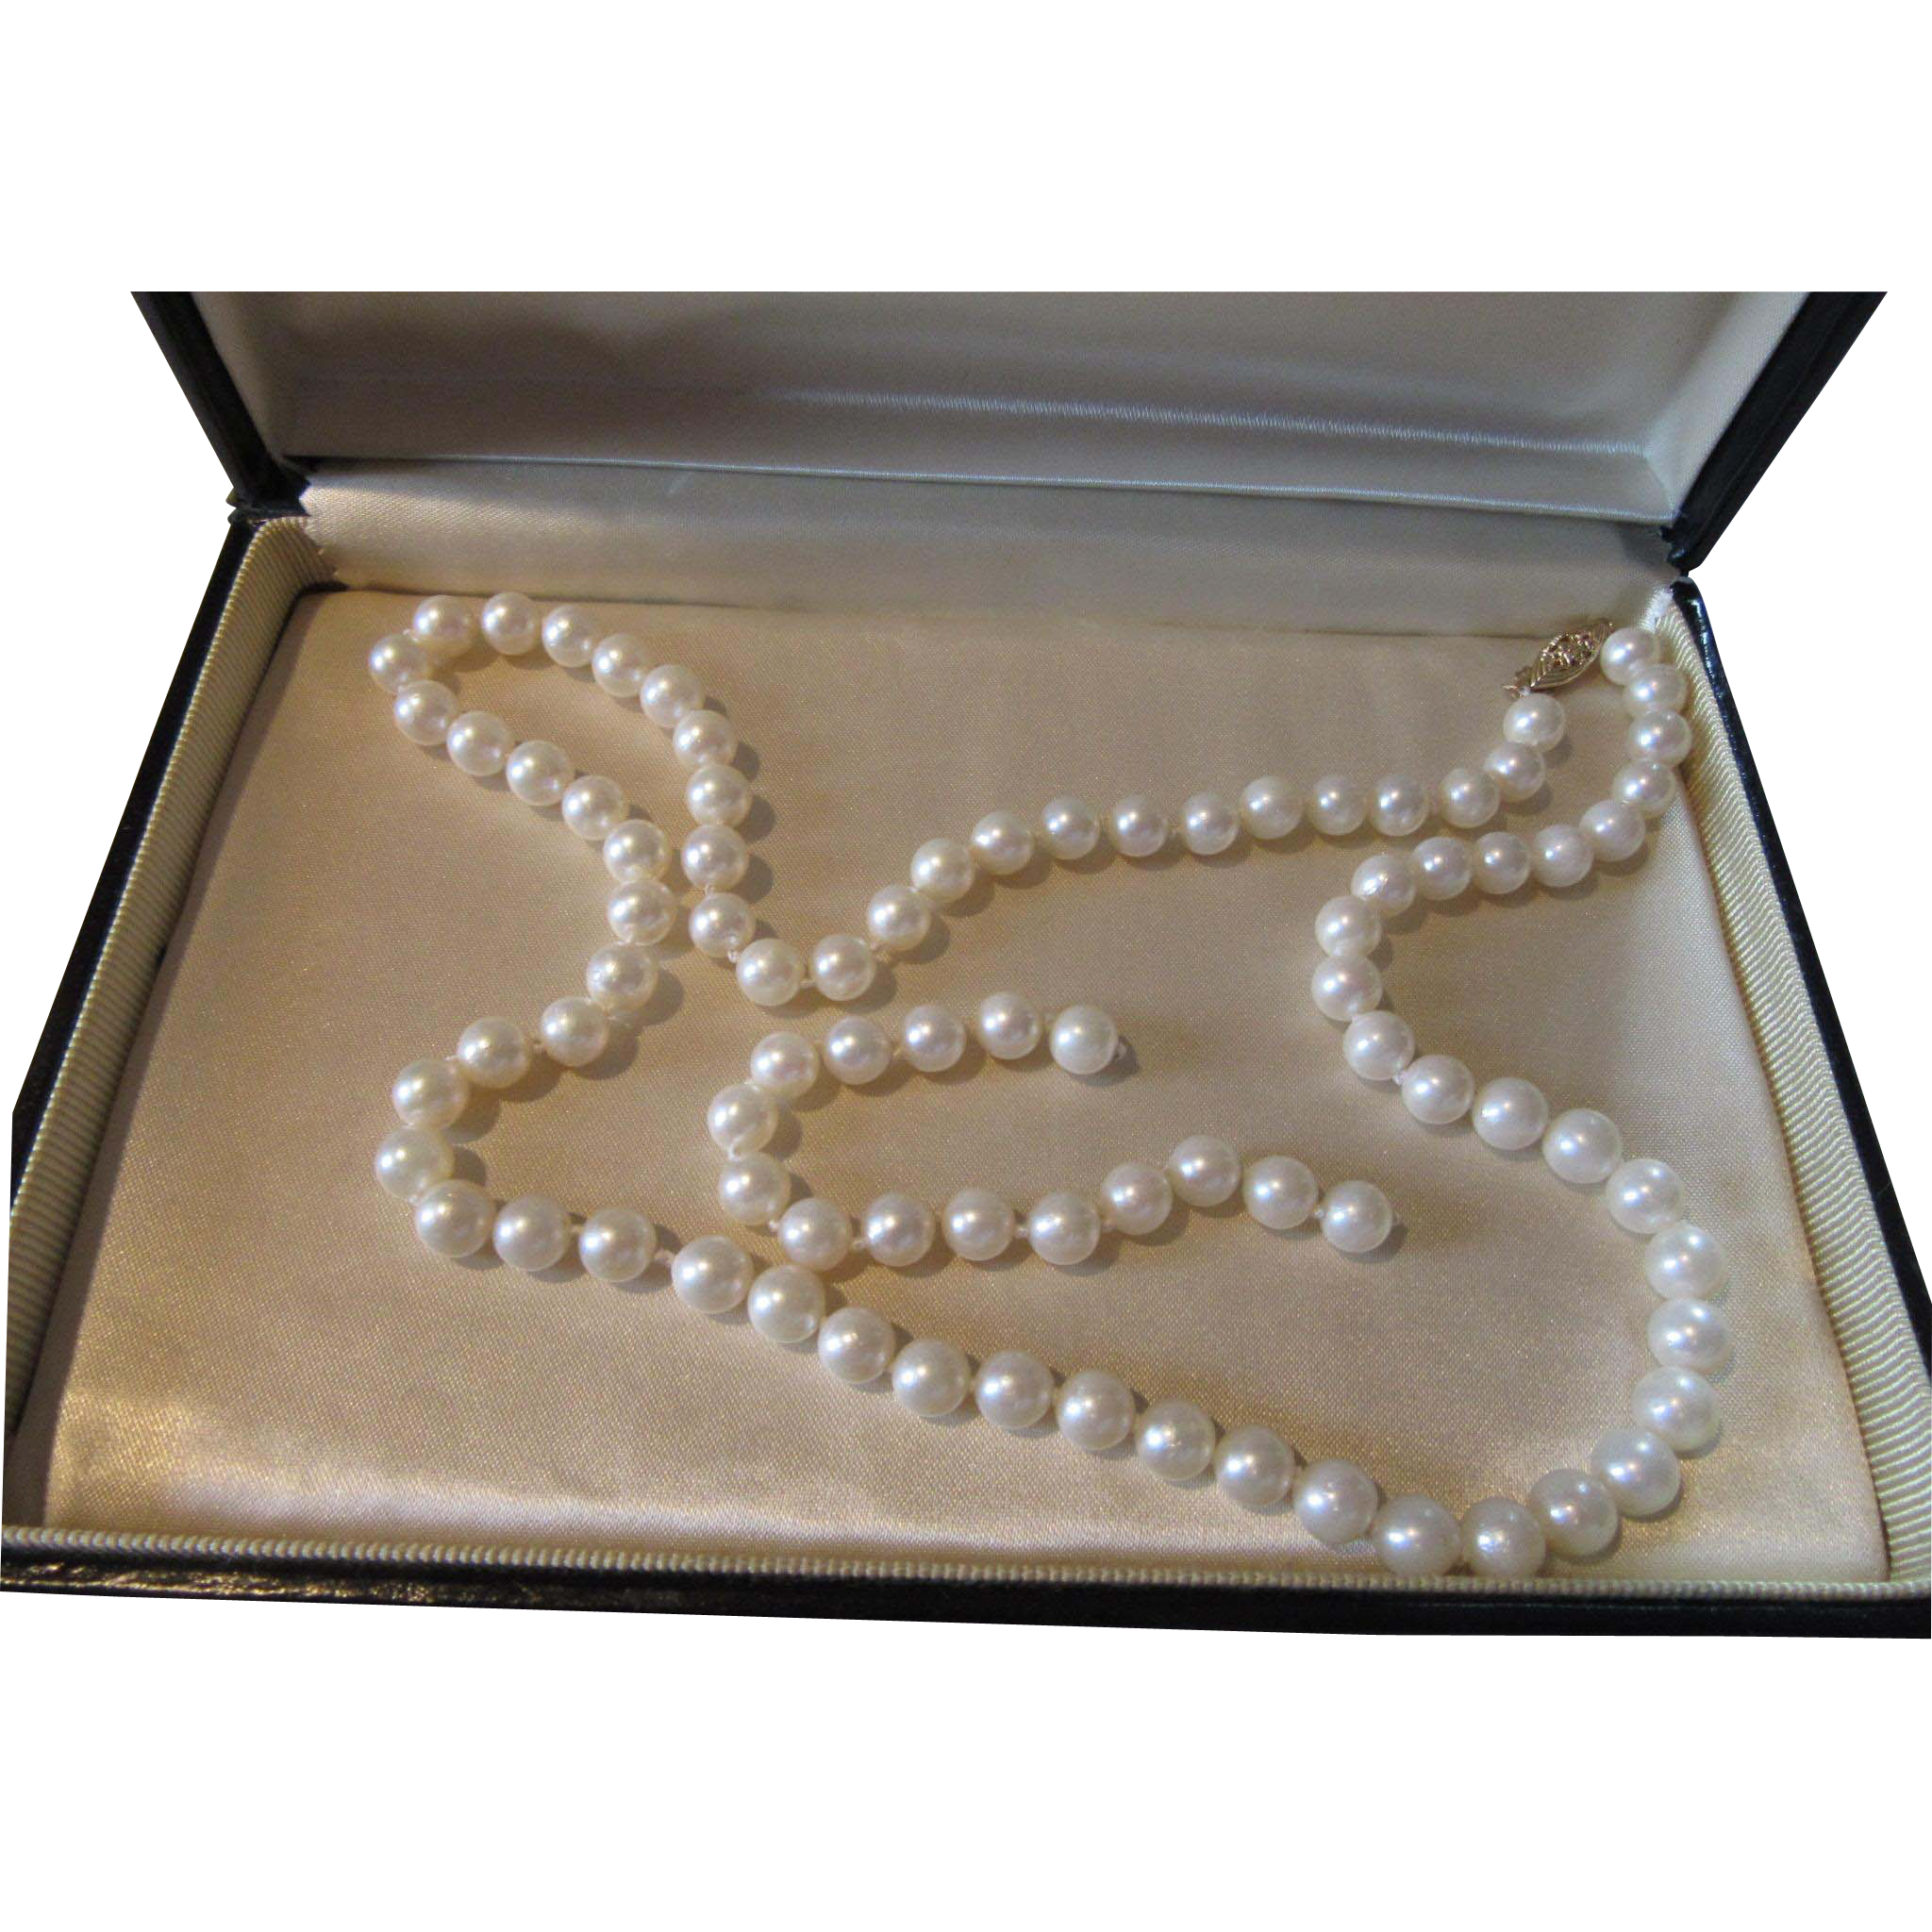 7-8 mm Genuine Cultured Pearls Necklace Imperial Box Certificate